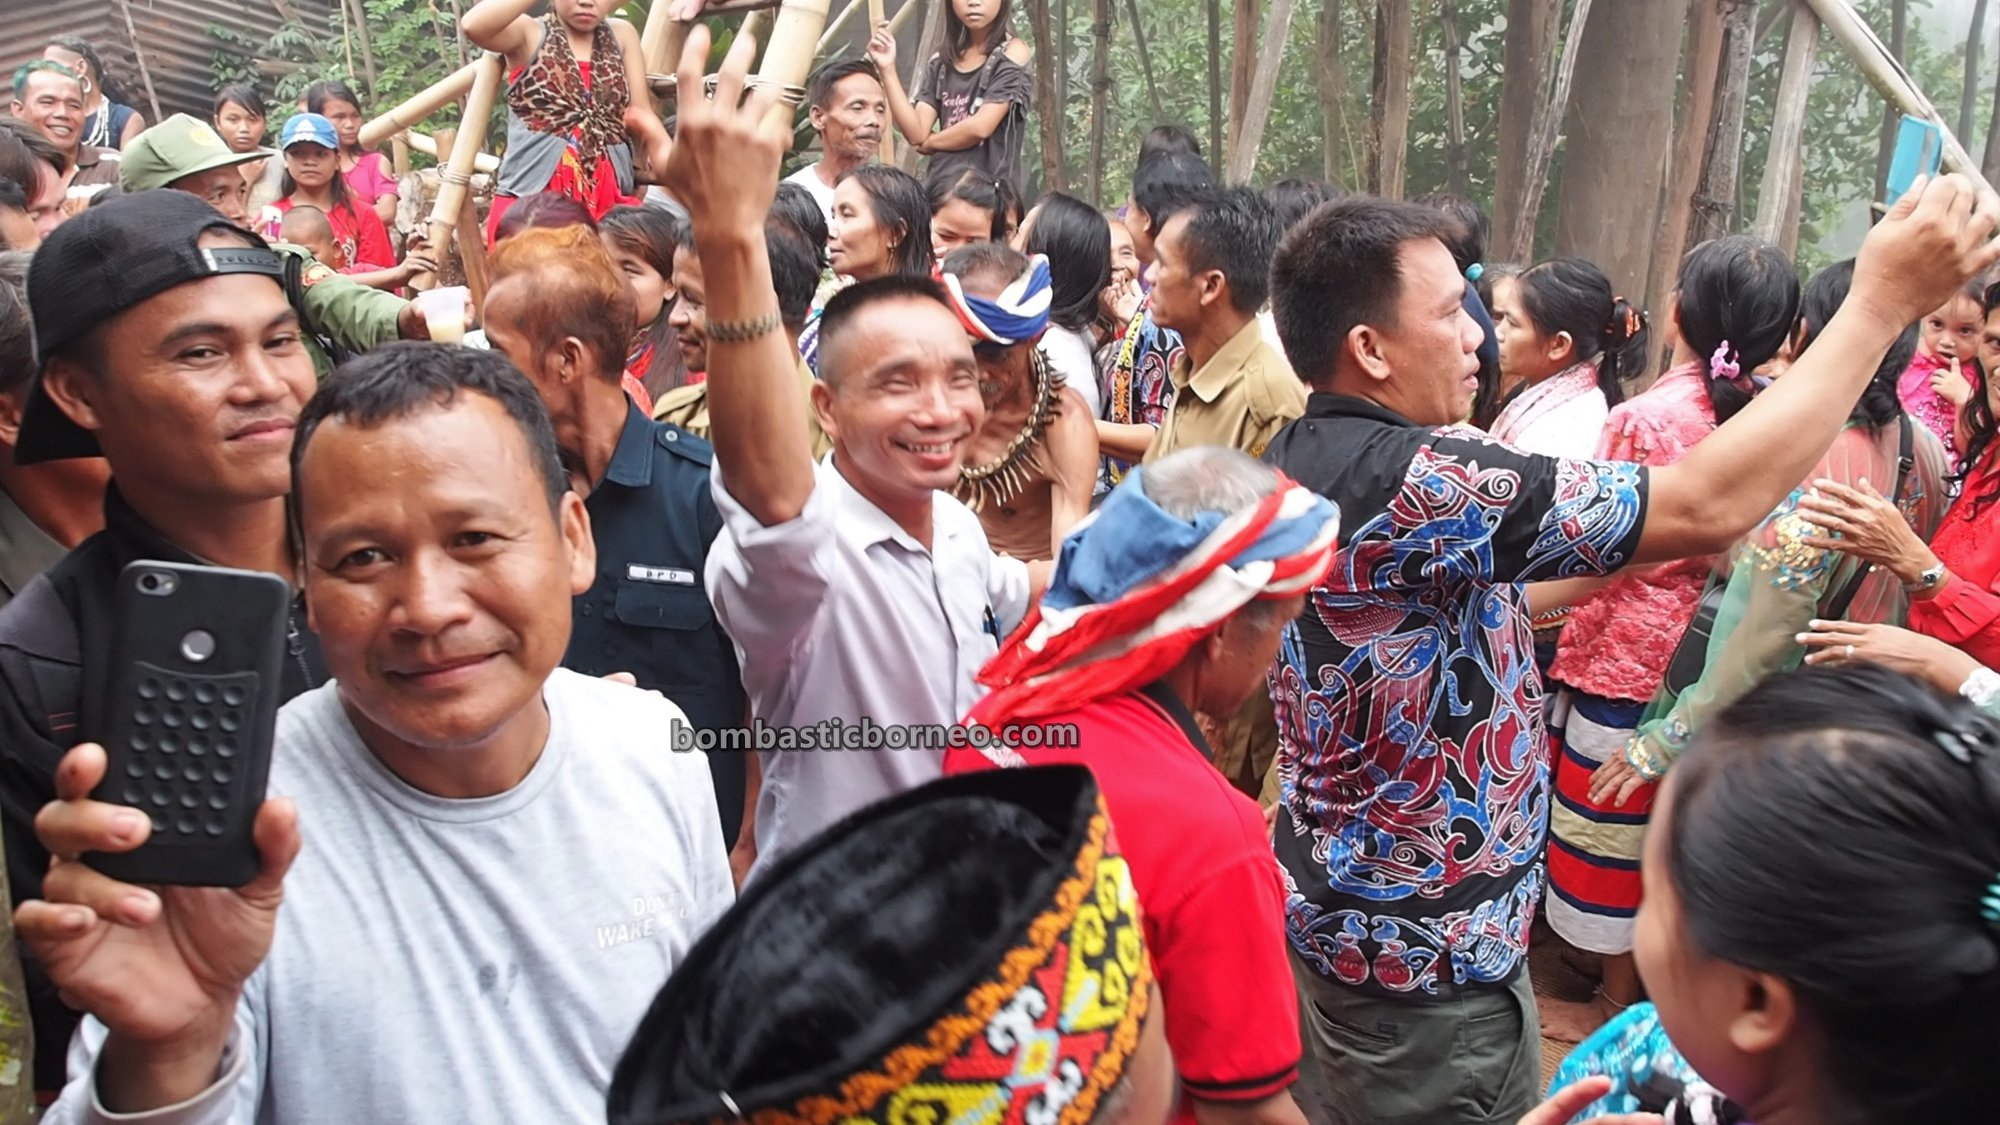 Desa Tamong, traditional, village, backpackers, Indonesia, Siding, nyobeng, harvest festival, native, tribal, Tourism, travel guide, Trans Borneo, 婆罗洲原住民丰收节, 印尼西加里曼丹, 孟加映达雅文化